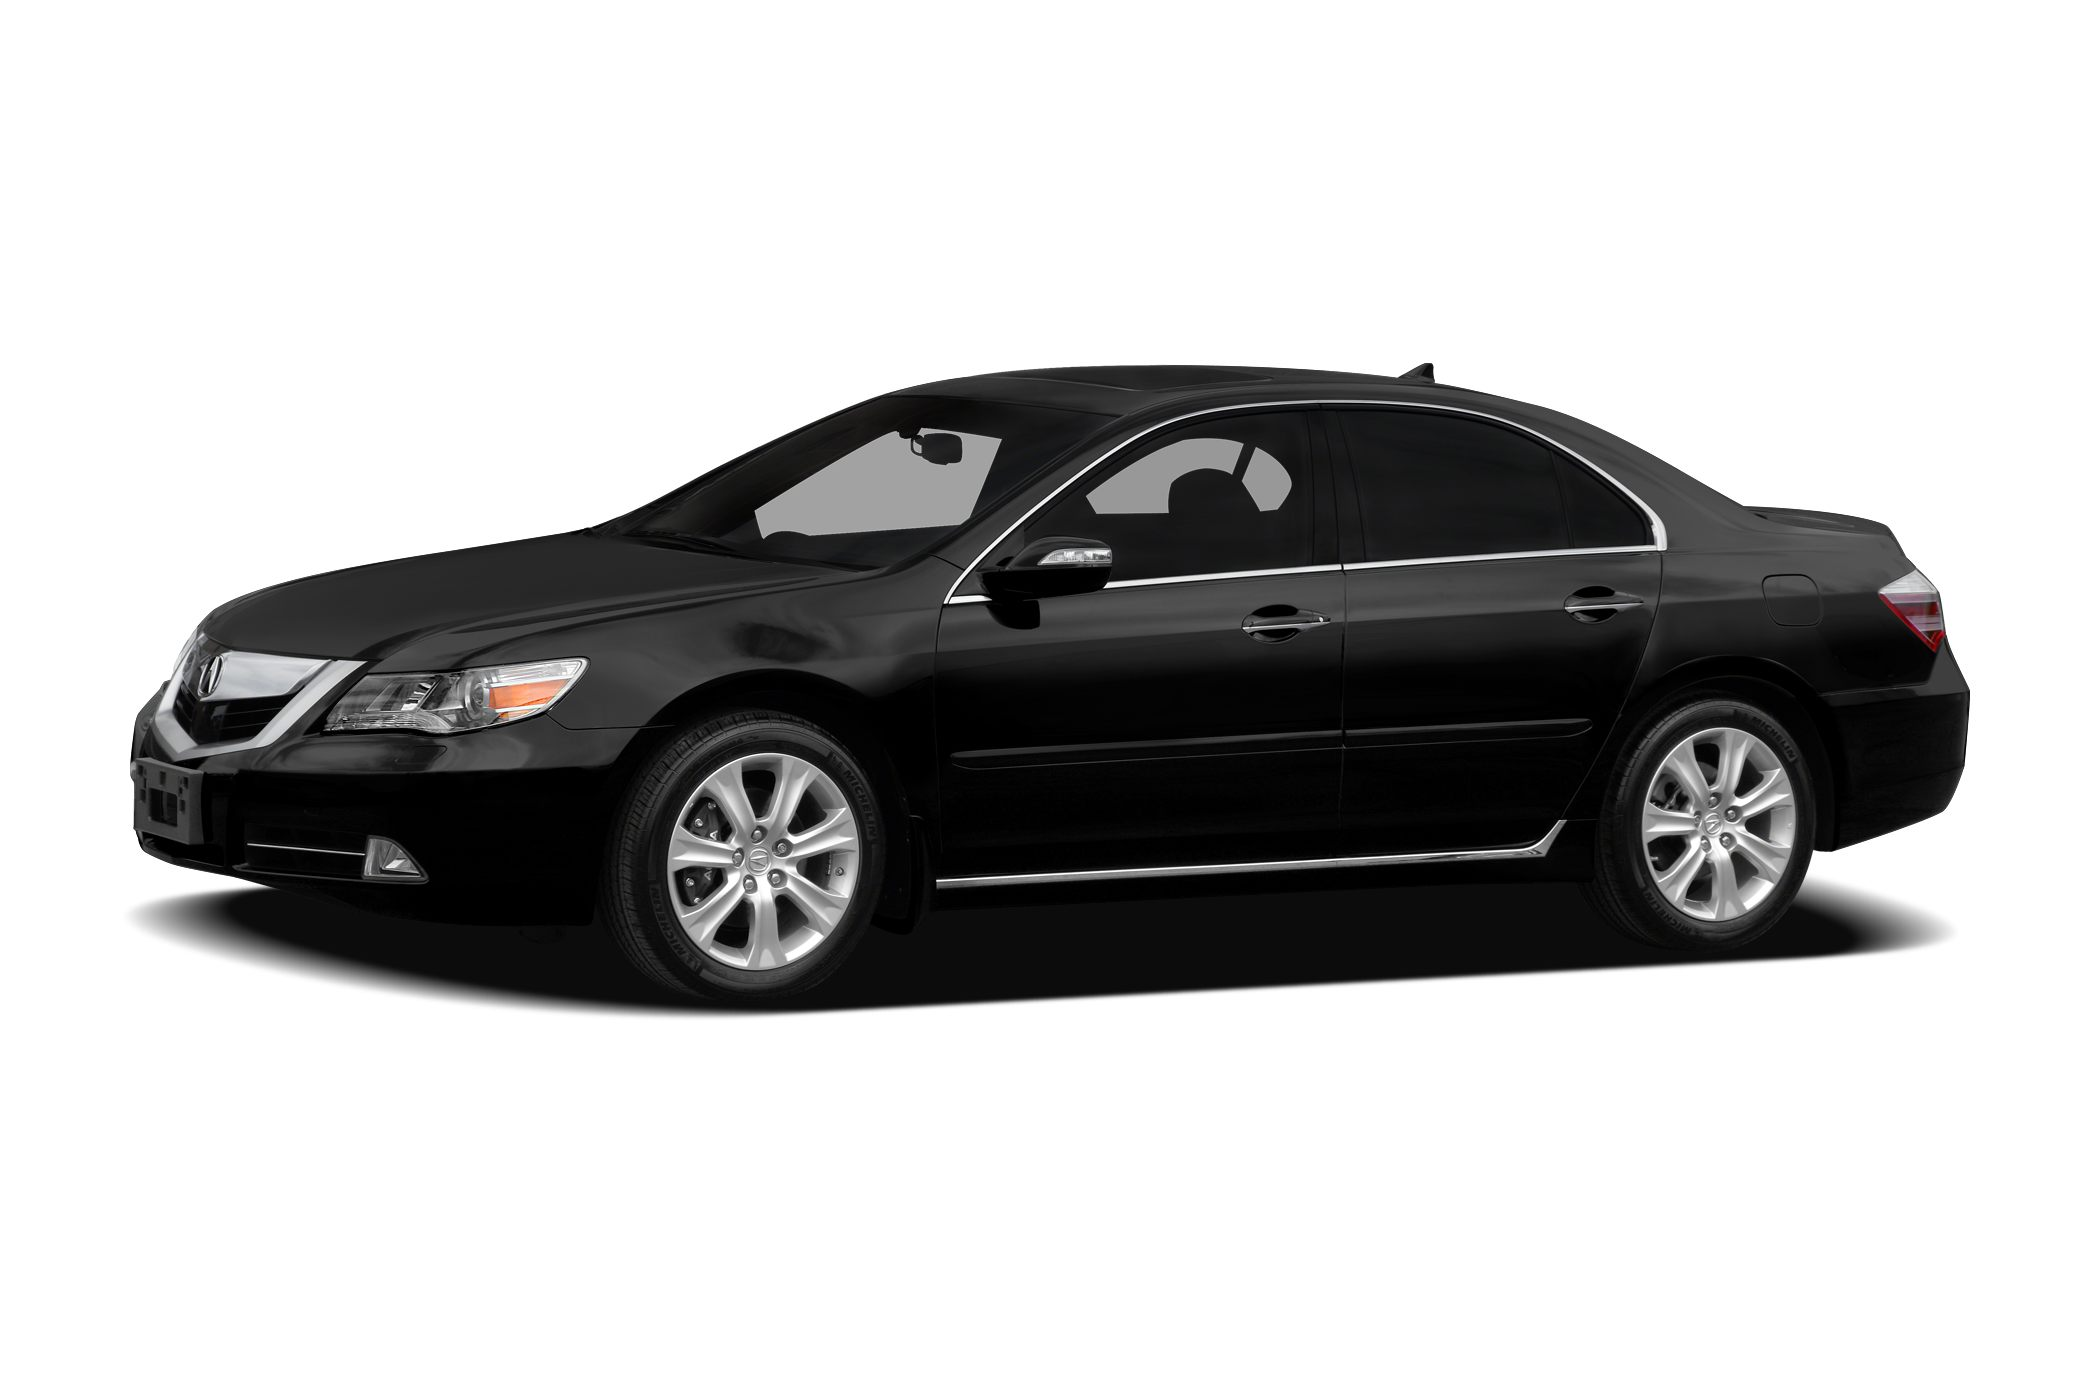 2012 Acura RL